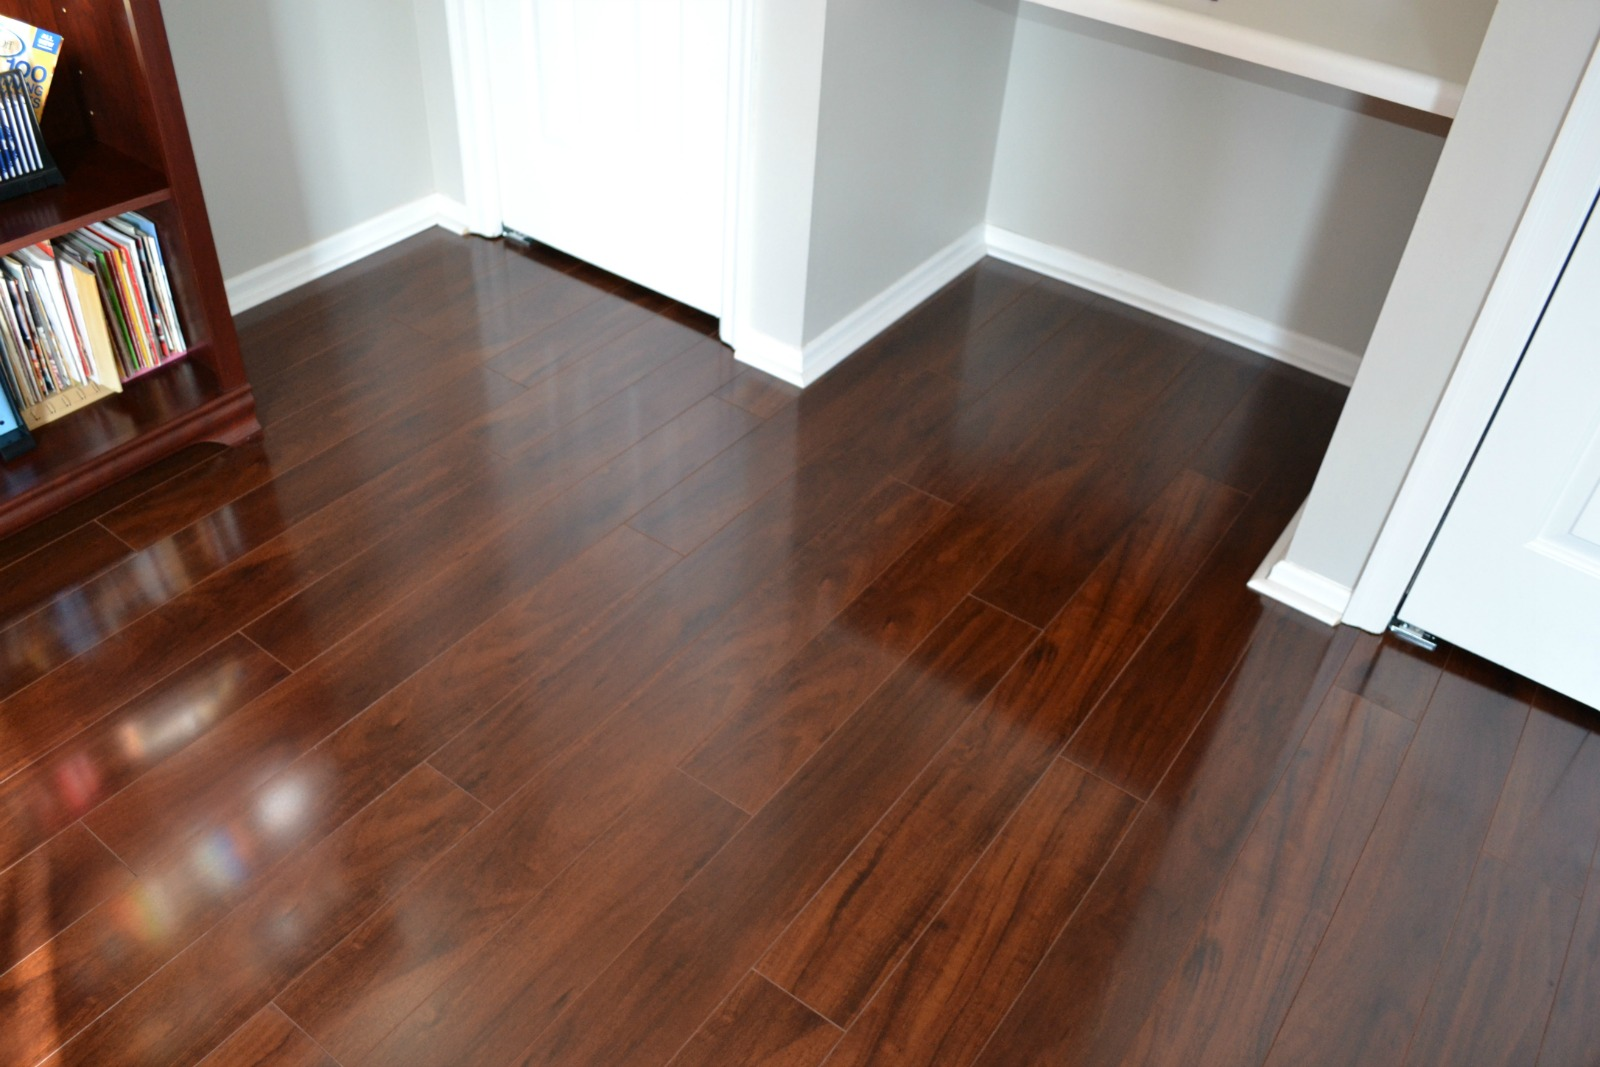 laminate floor, office remodel, spring project